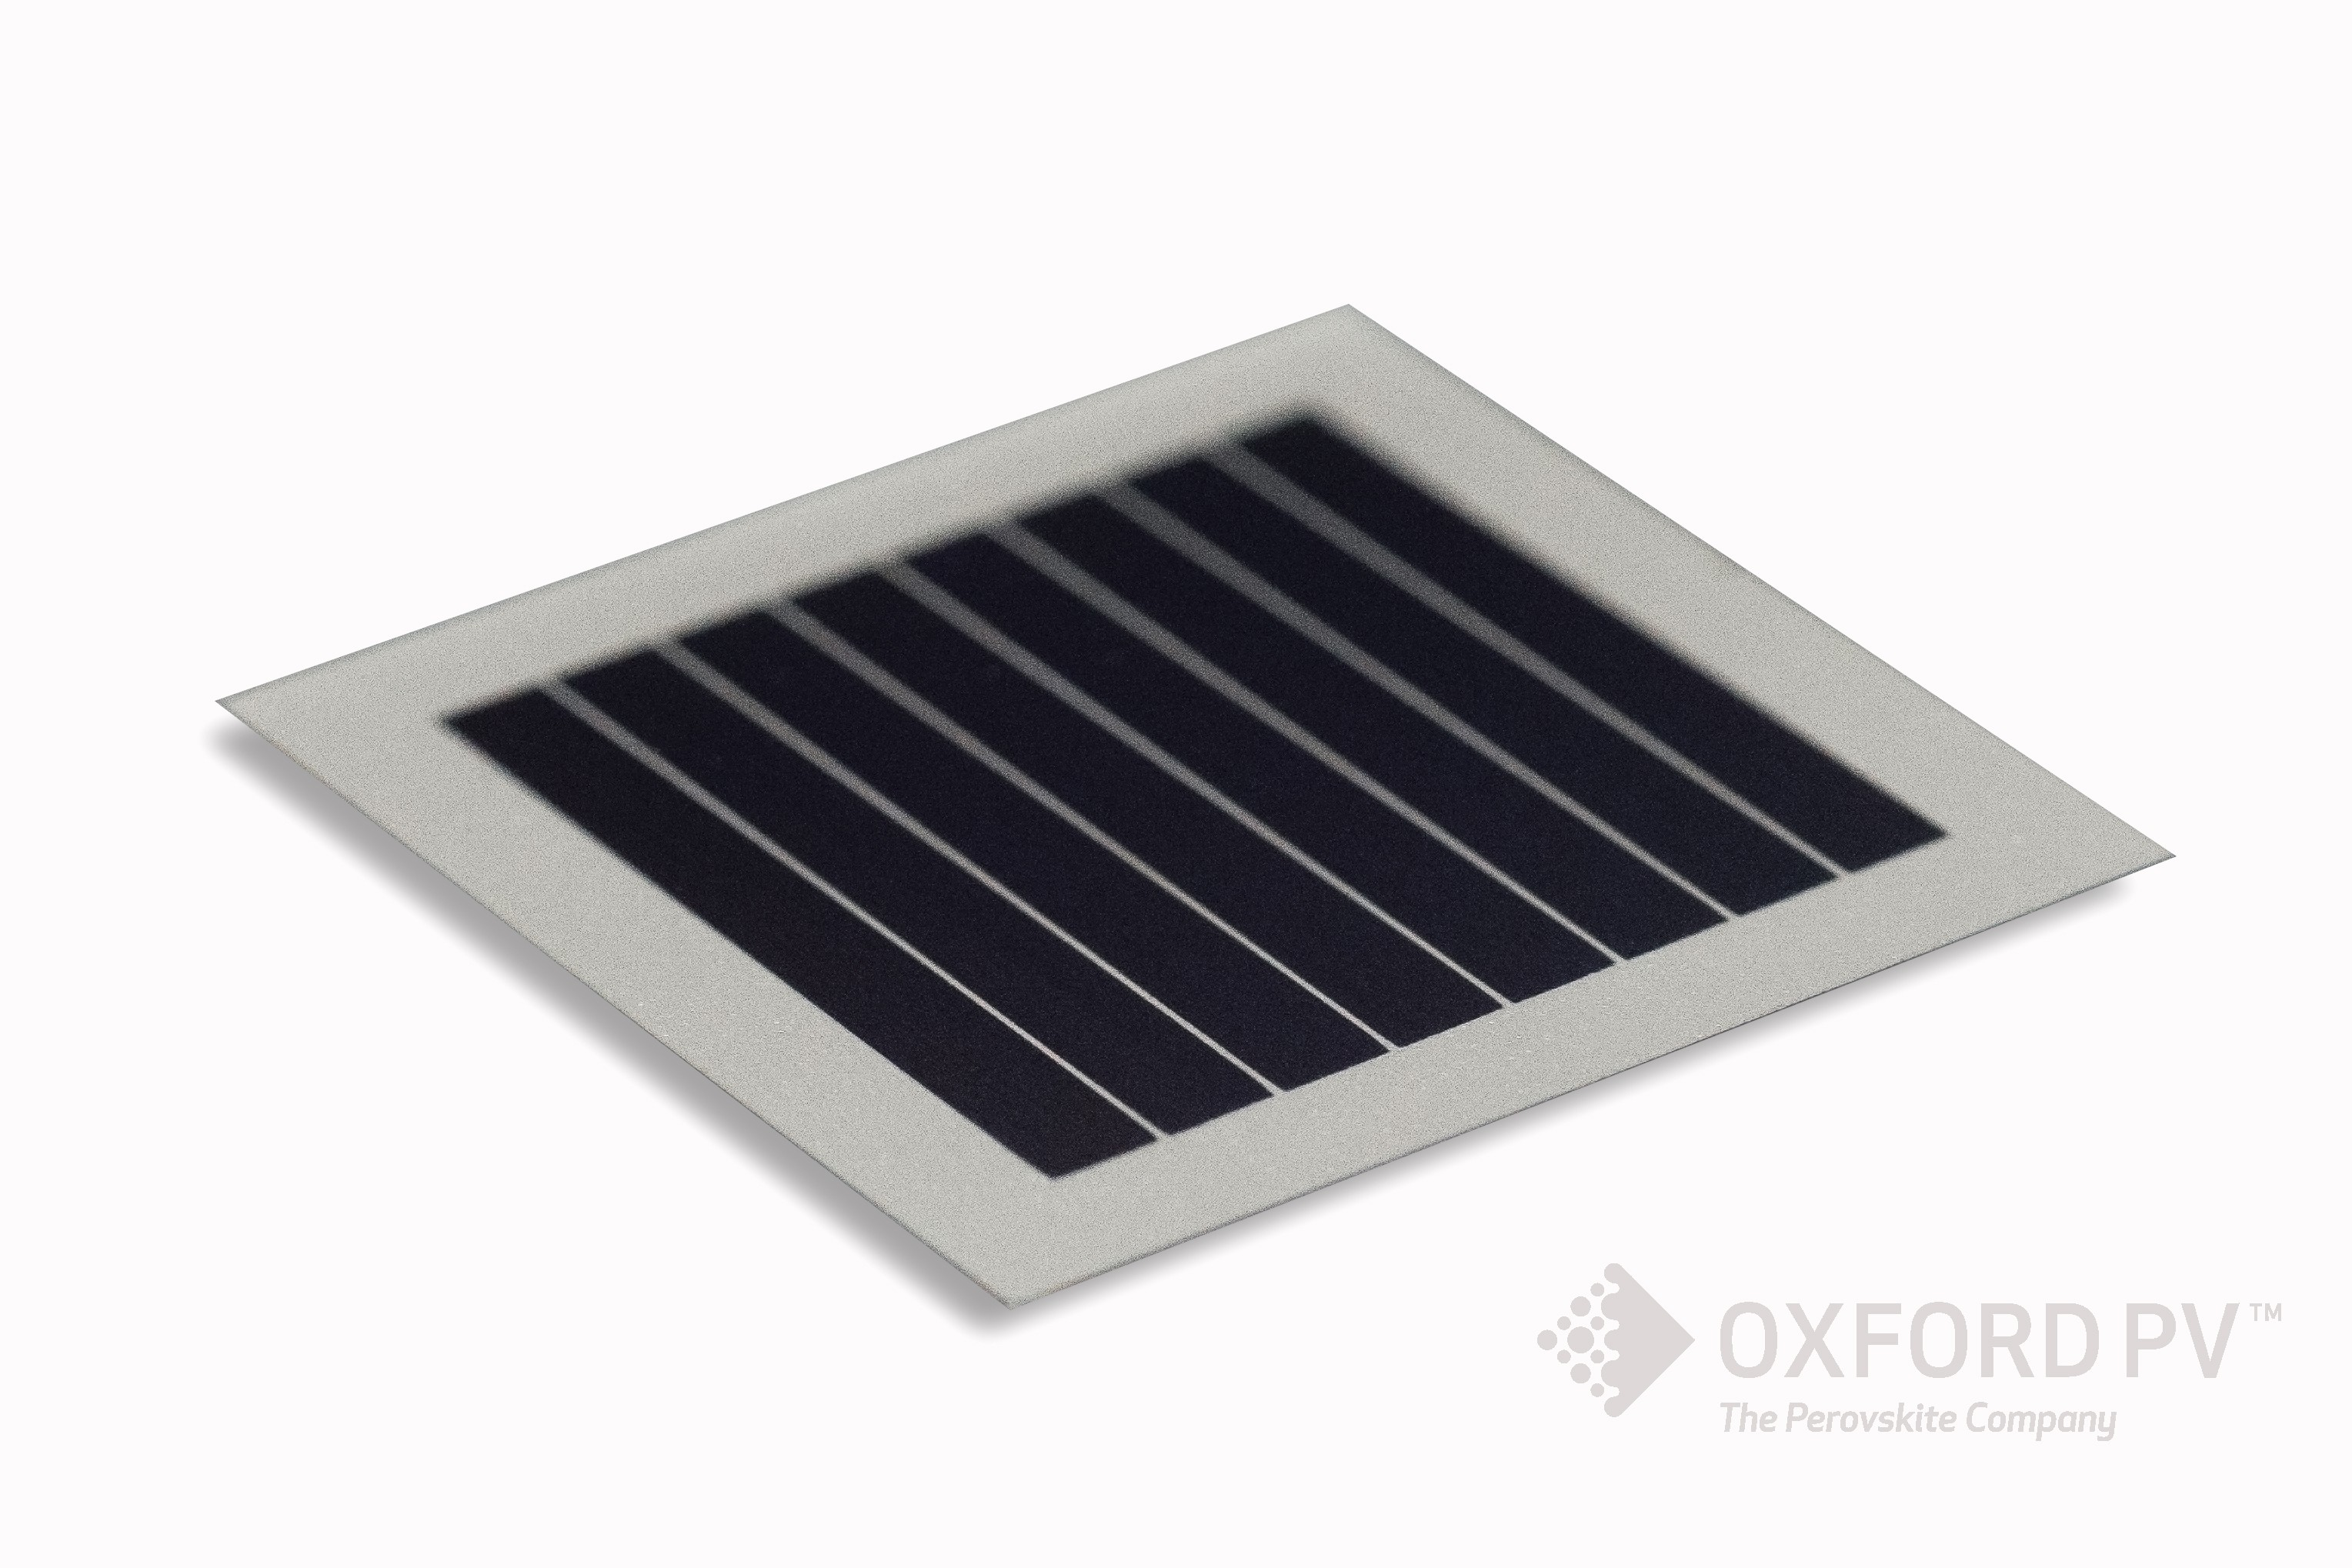 Oxford PV perovskite solar cell achieves 28% efficiency